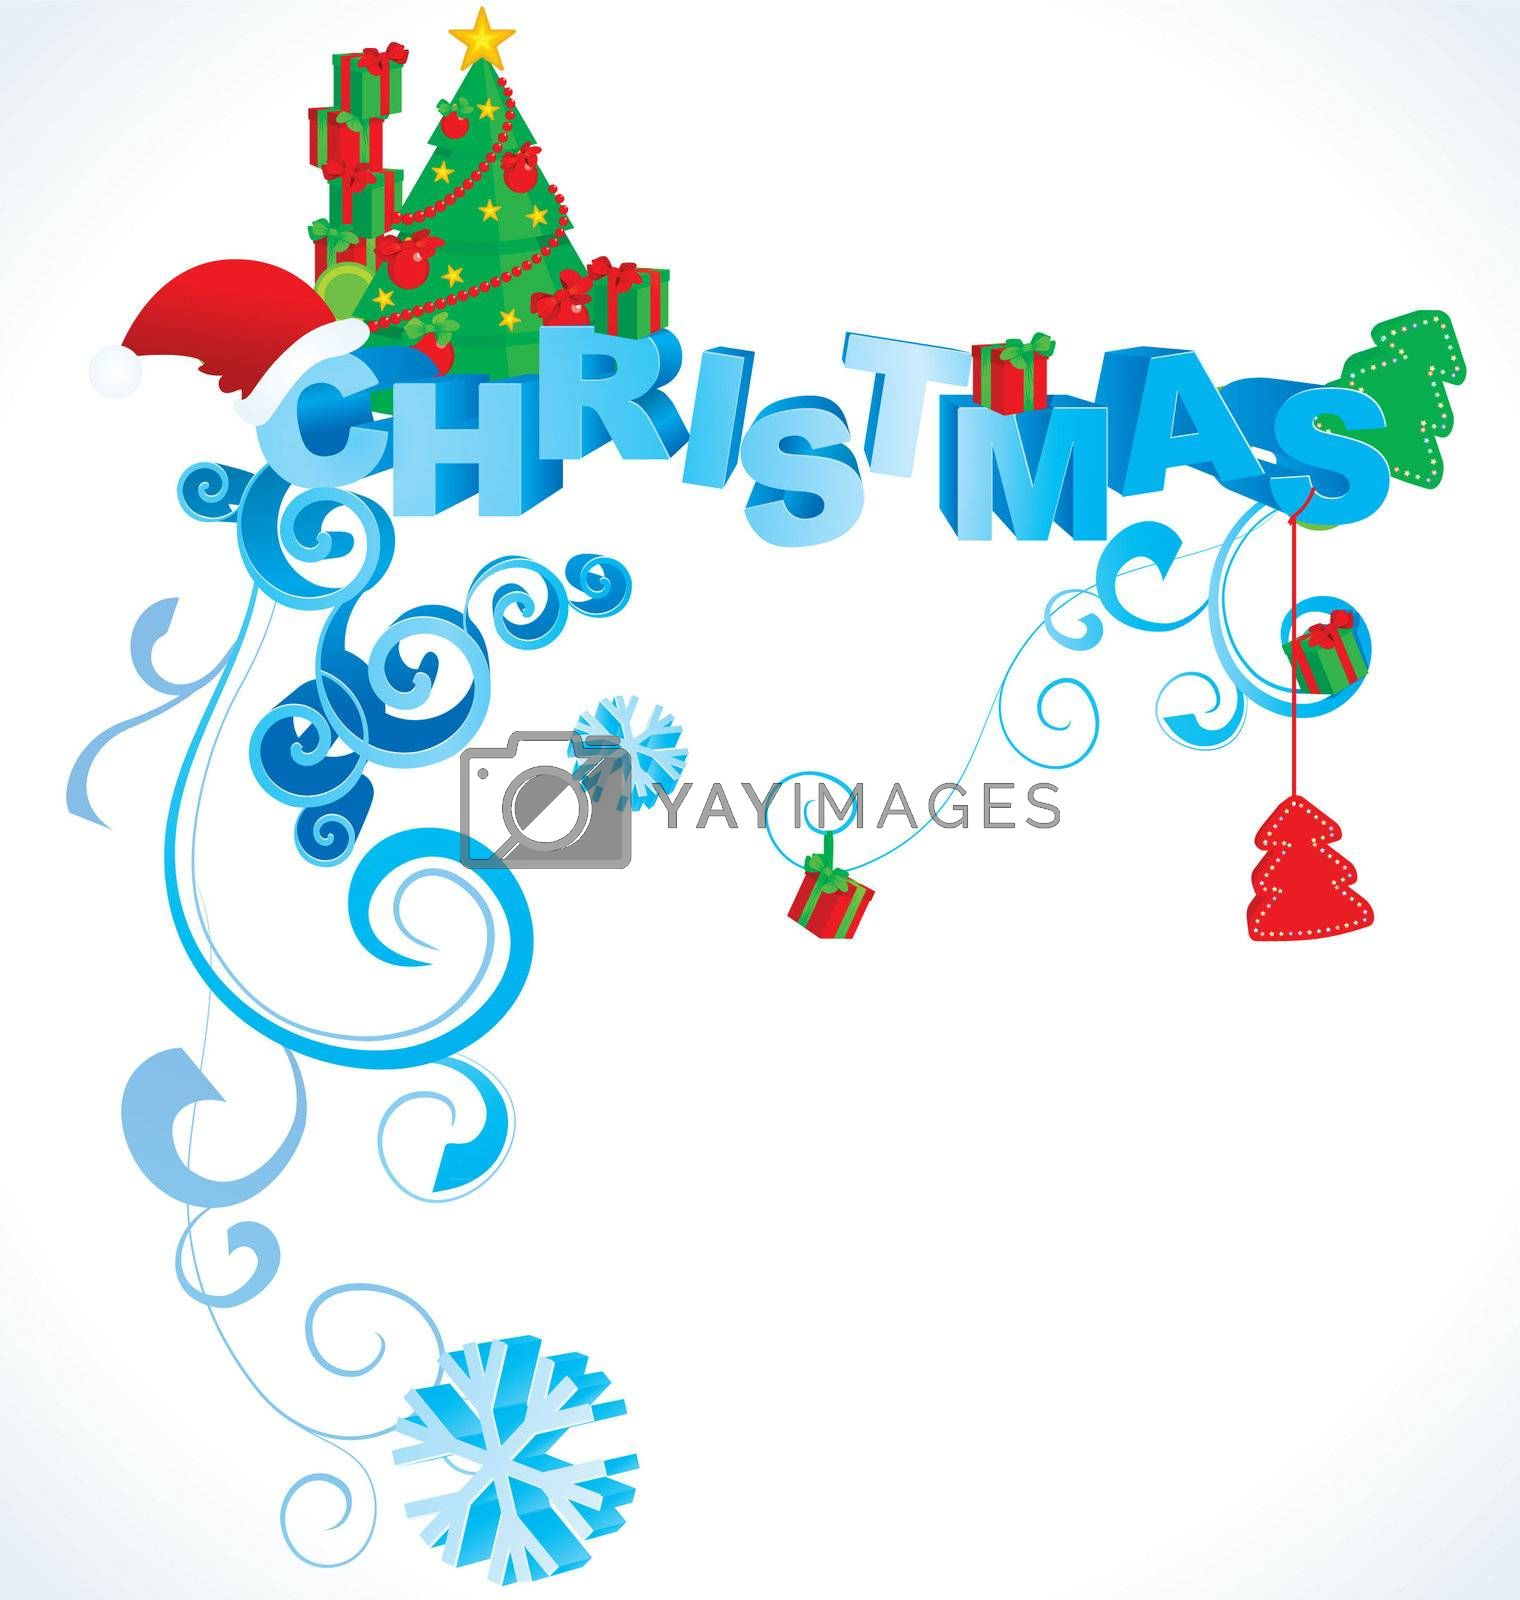 christmas 3D text in vintage style vector illustration